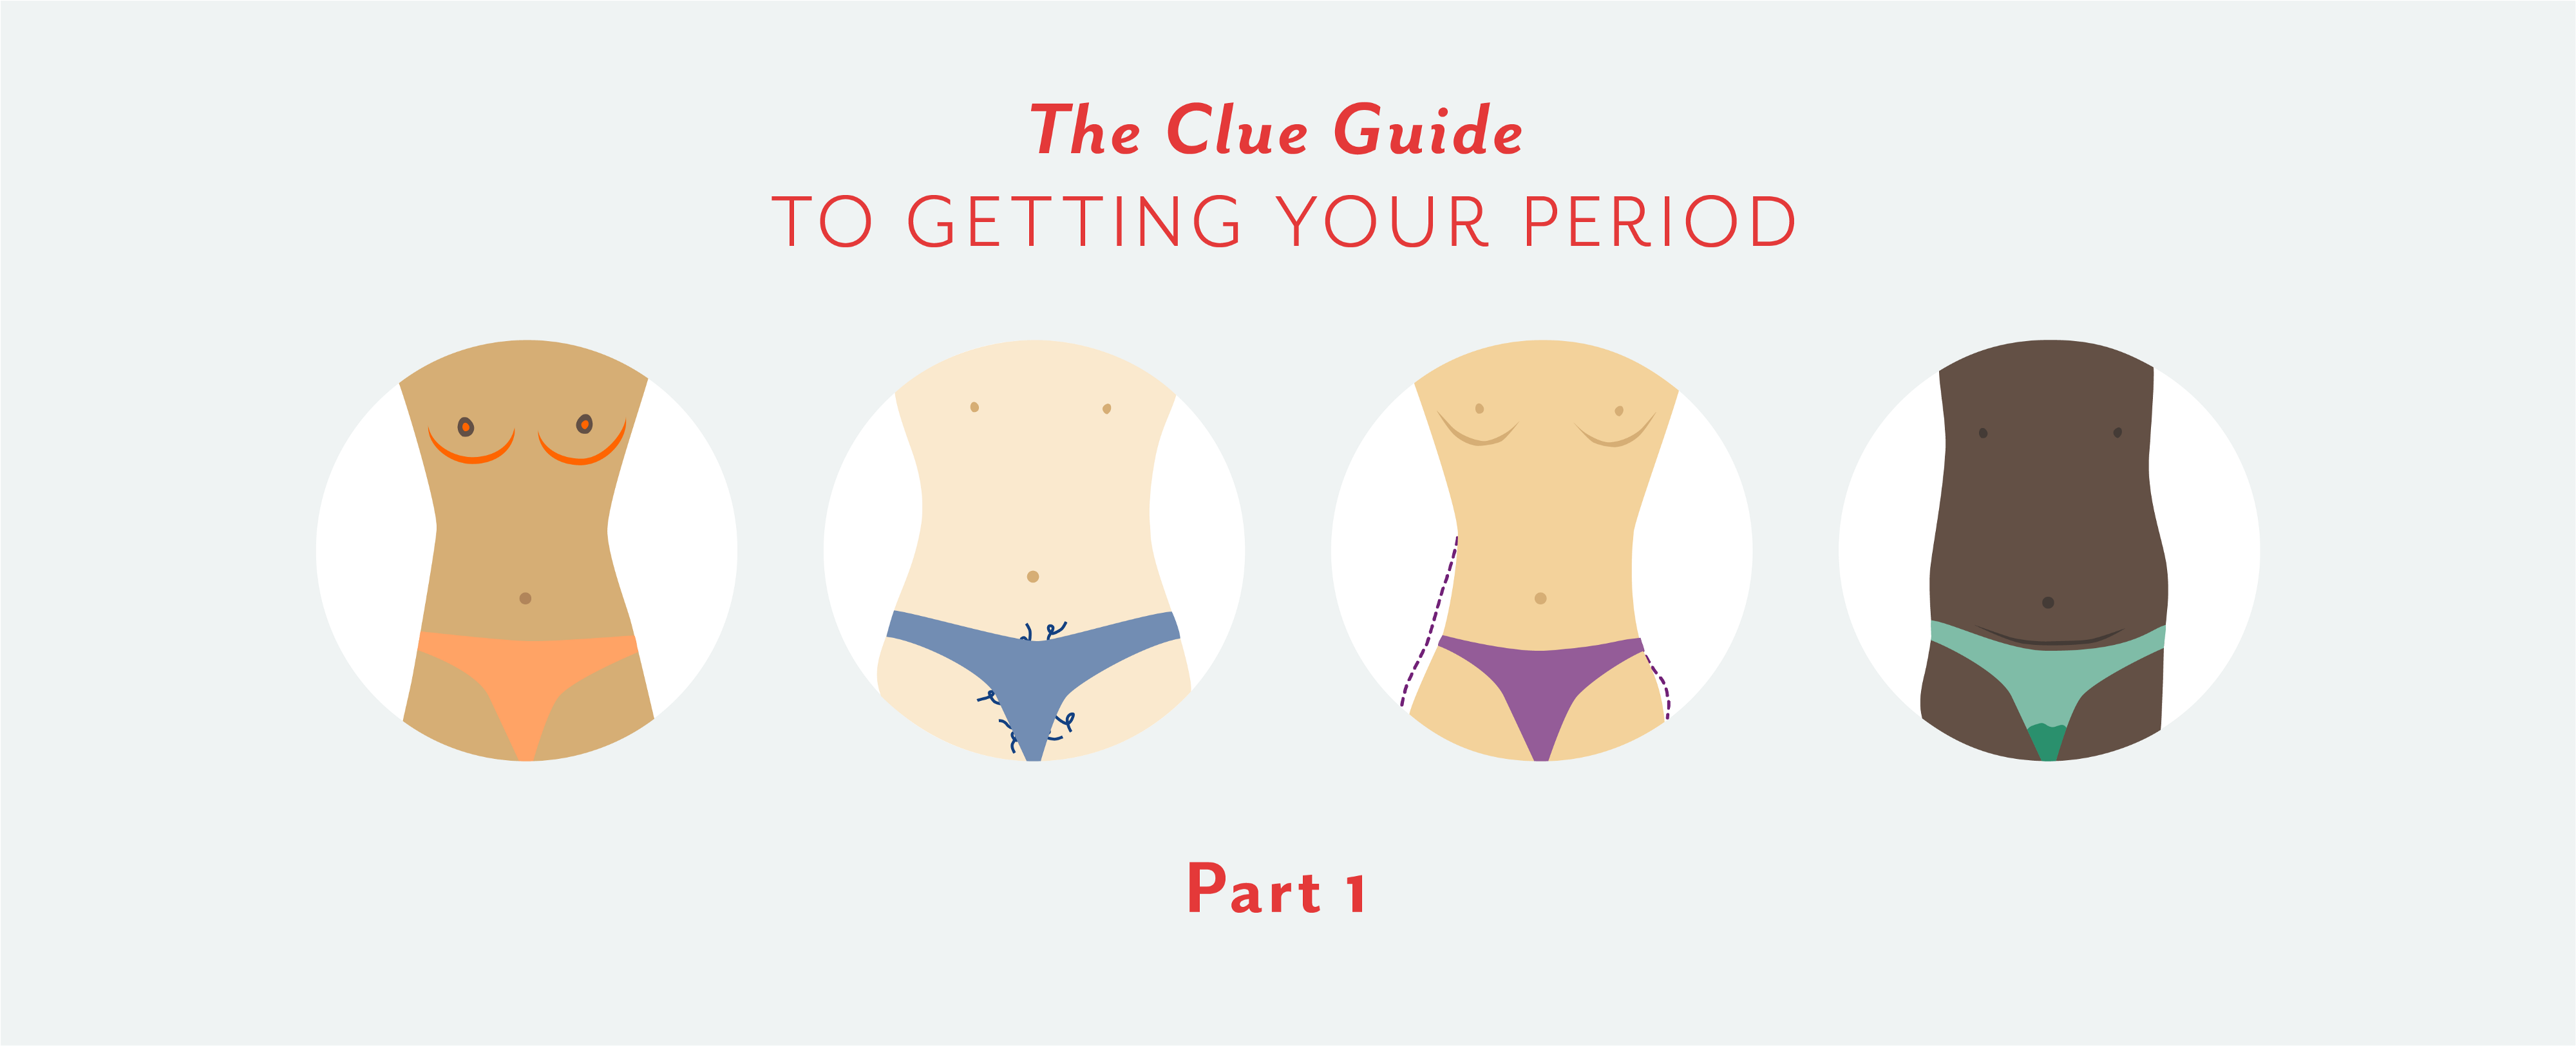 Part 1: The Clue guide to getting your period - Clued In